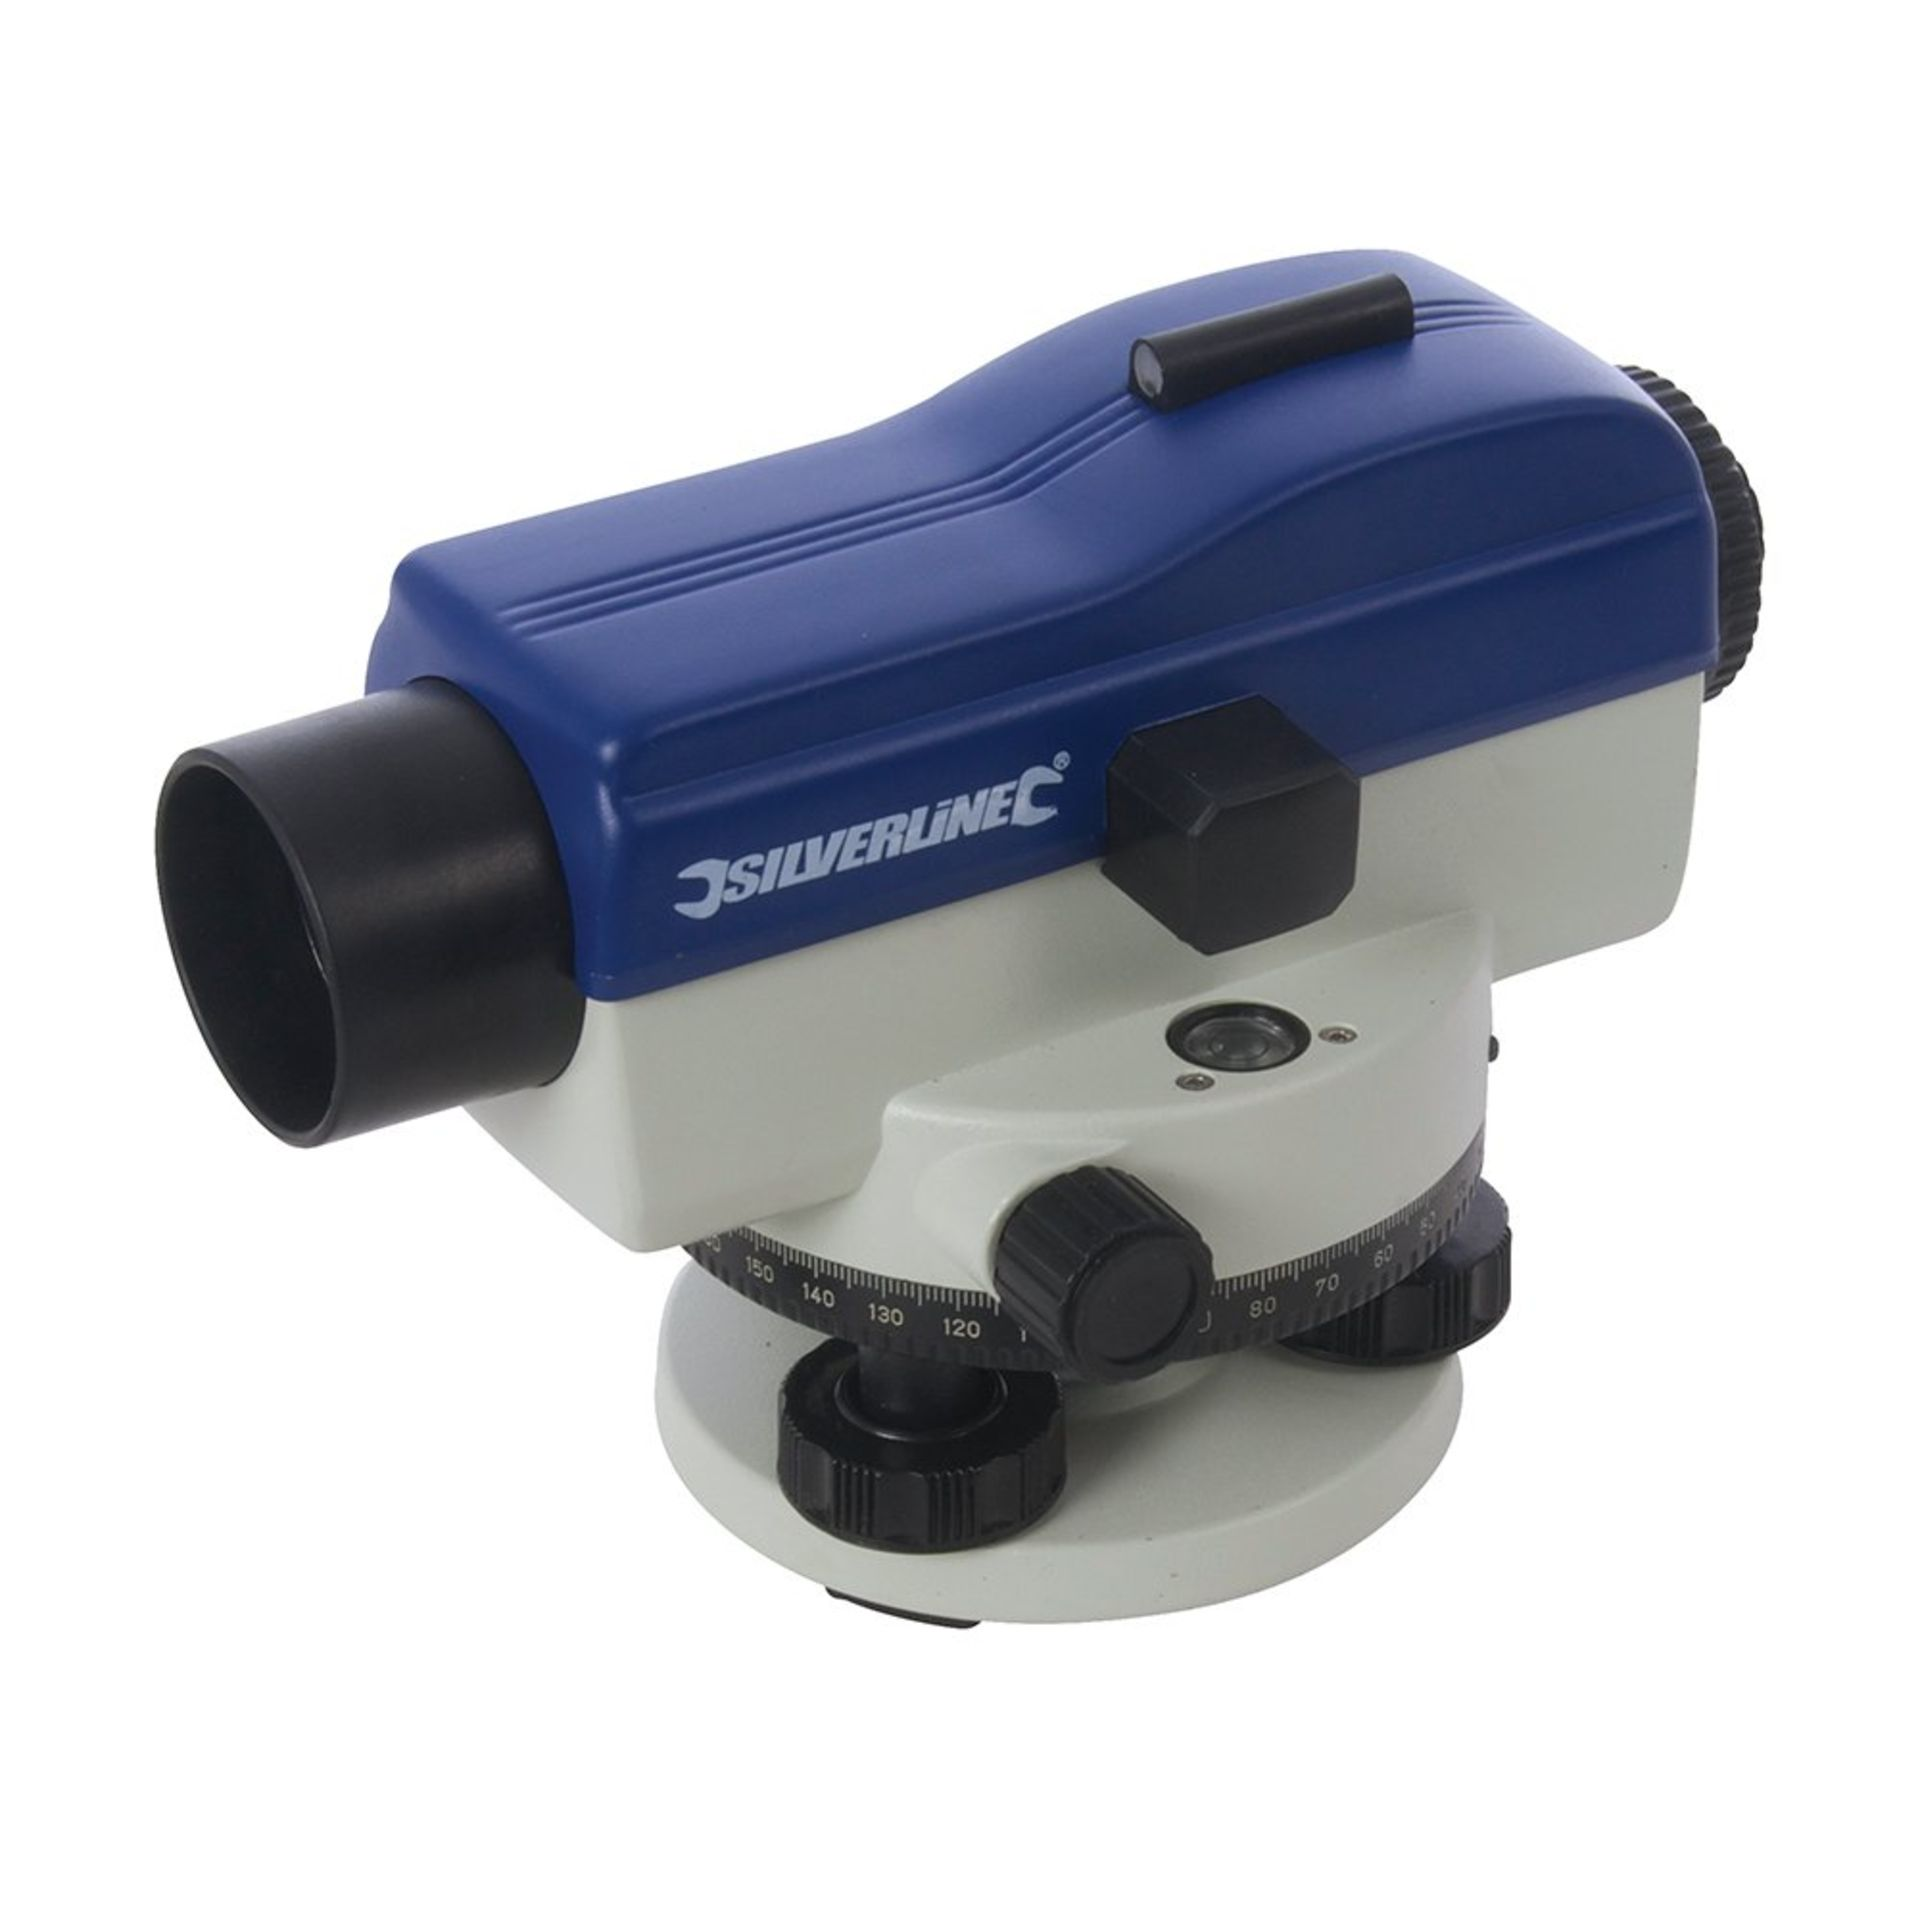 Brand New Silverline Automatic Optical Level - 20X Magnification - Image 2 of 2